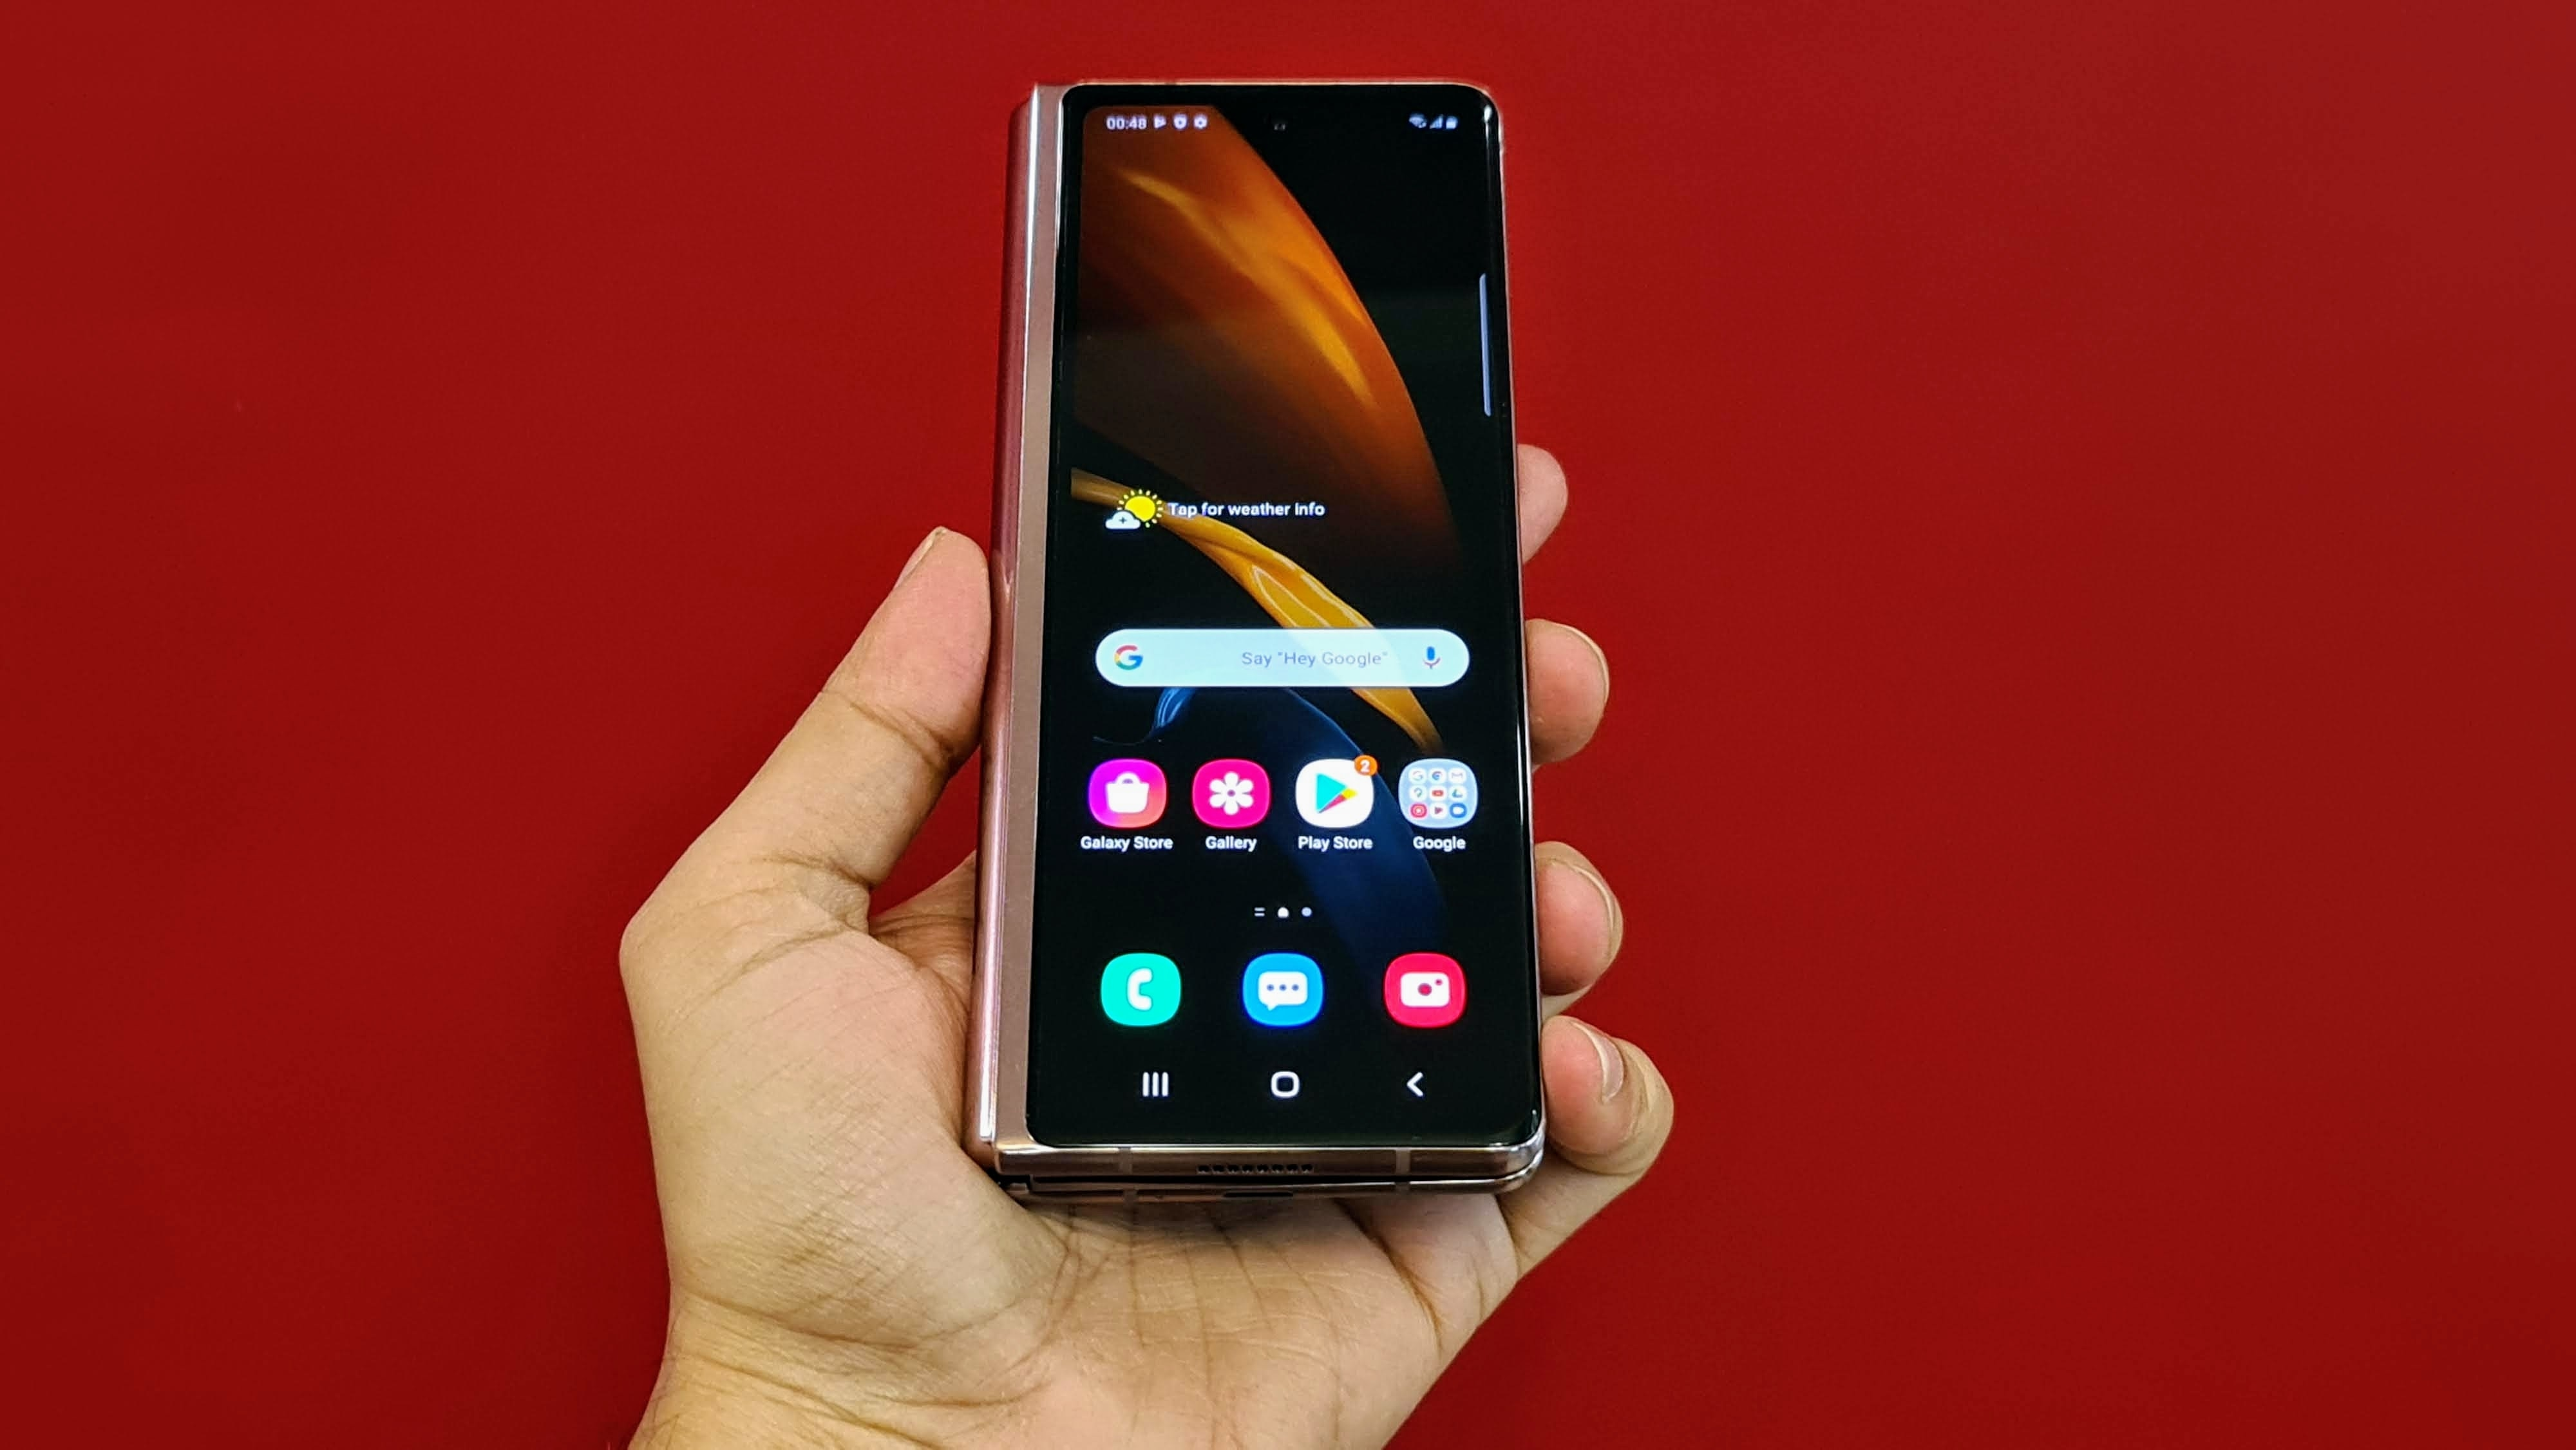 With a larger cover display than before, you can work more on this without opening the phone every time. Most of the work can be done on this itself.